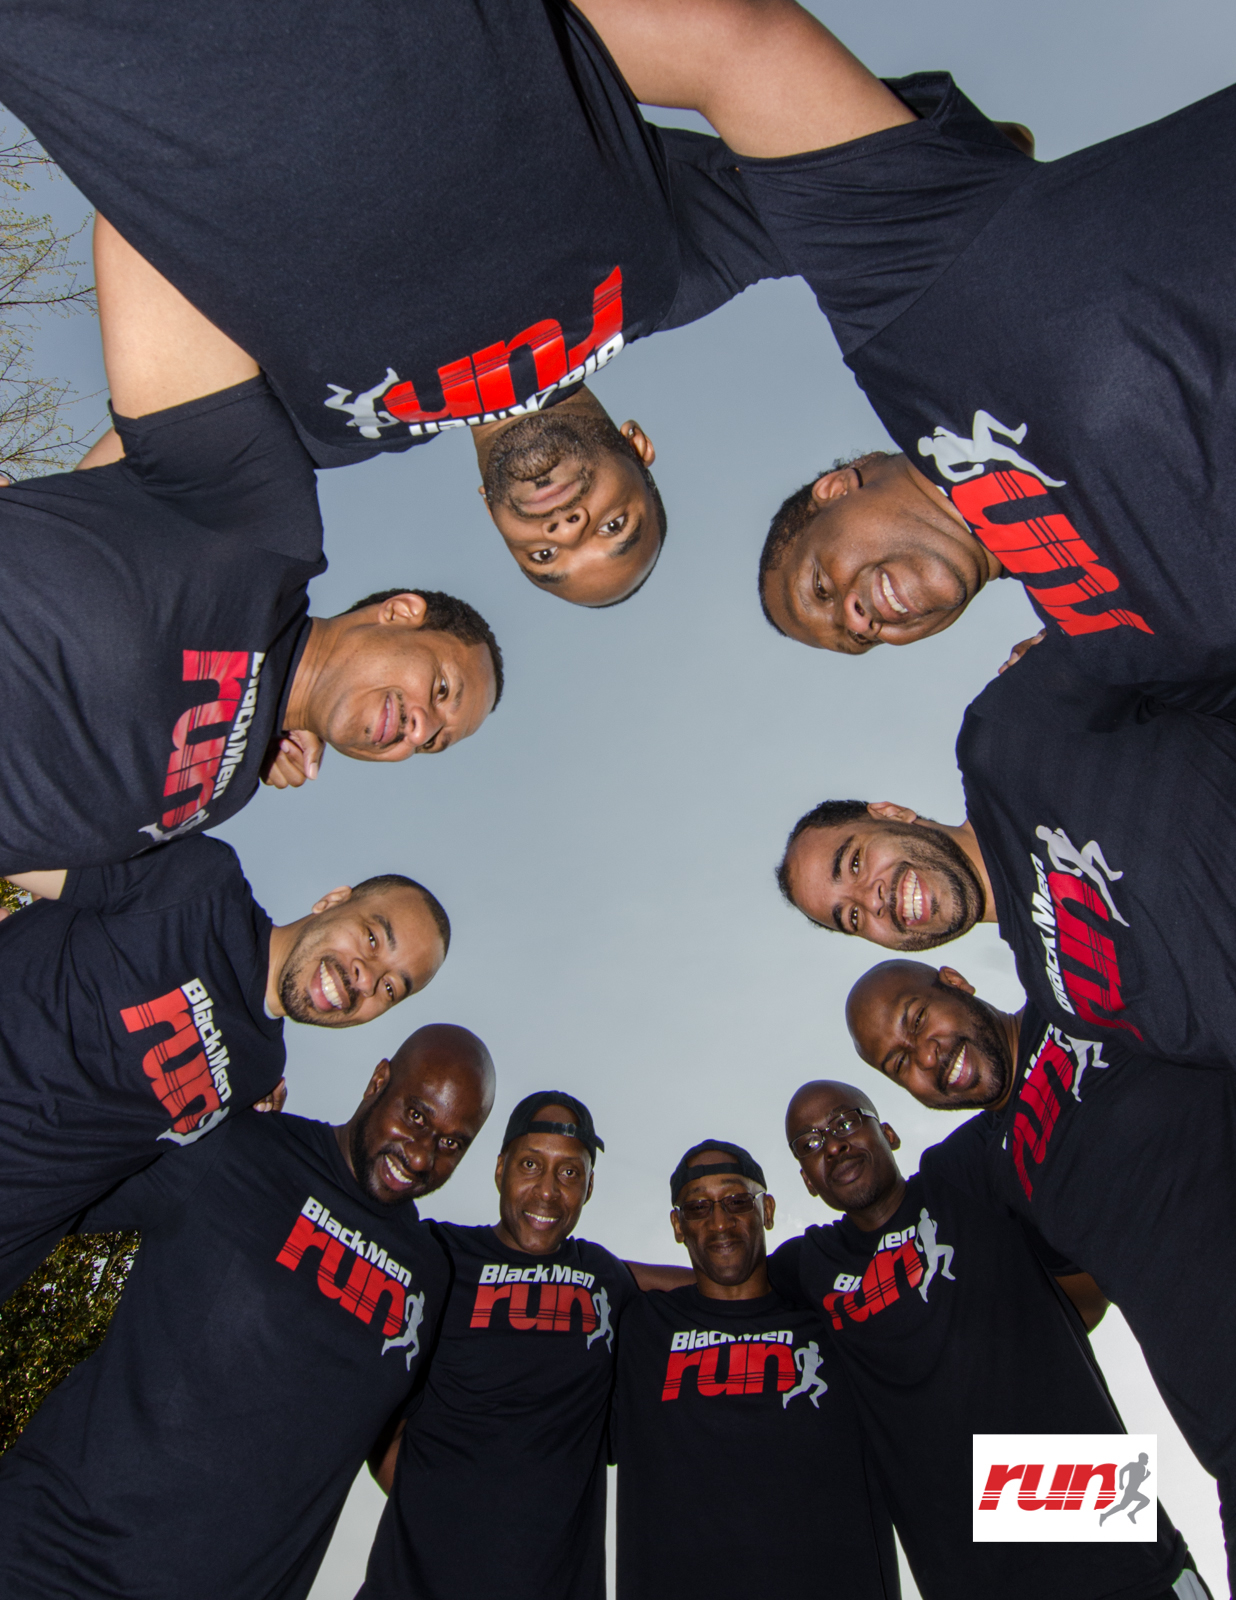 Black Men Run Launches the First Mobile Running/Fitness App Conceived, Designed and Developed by African Americans